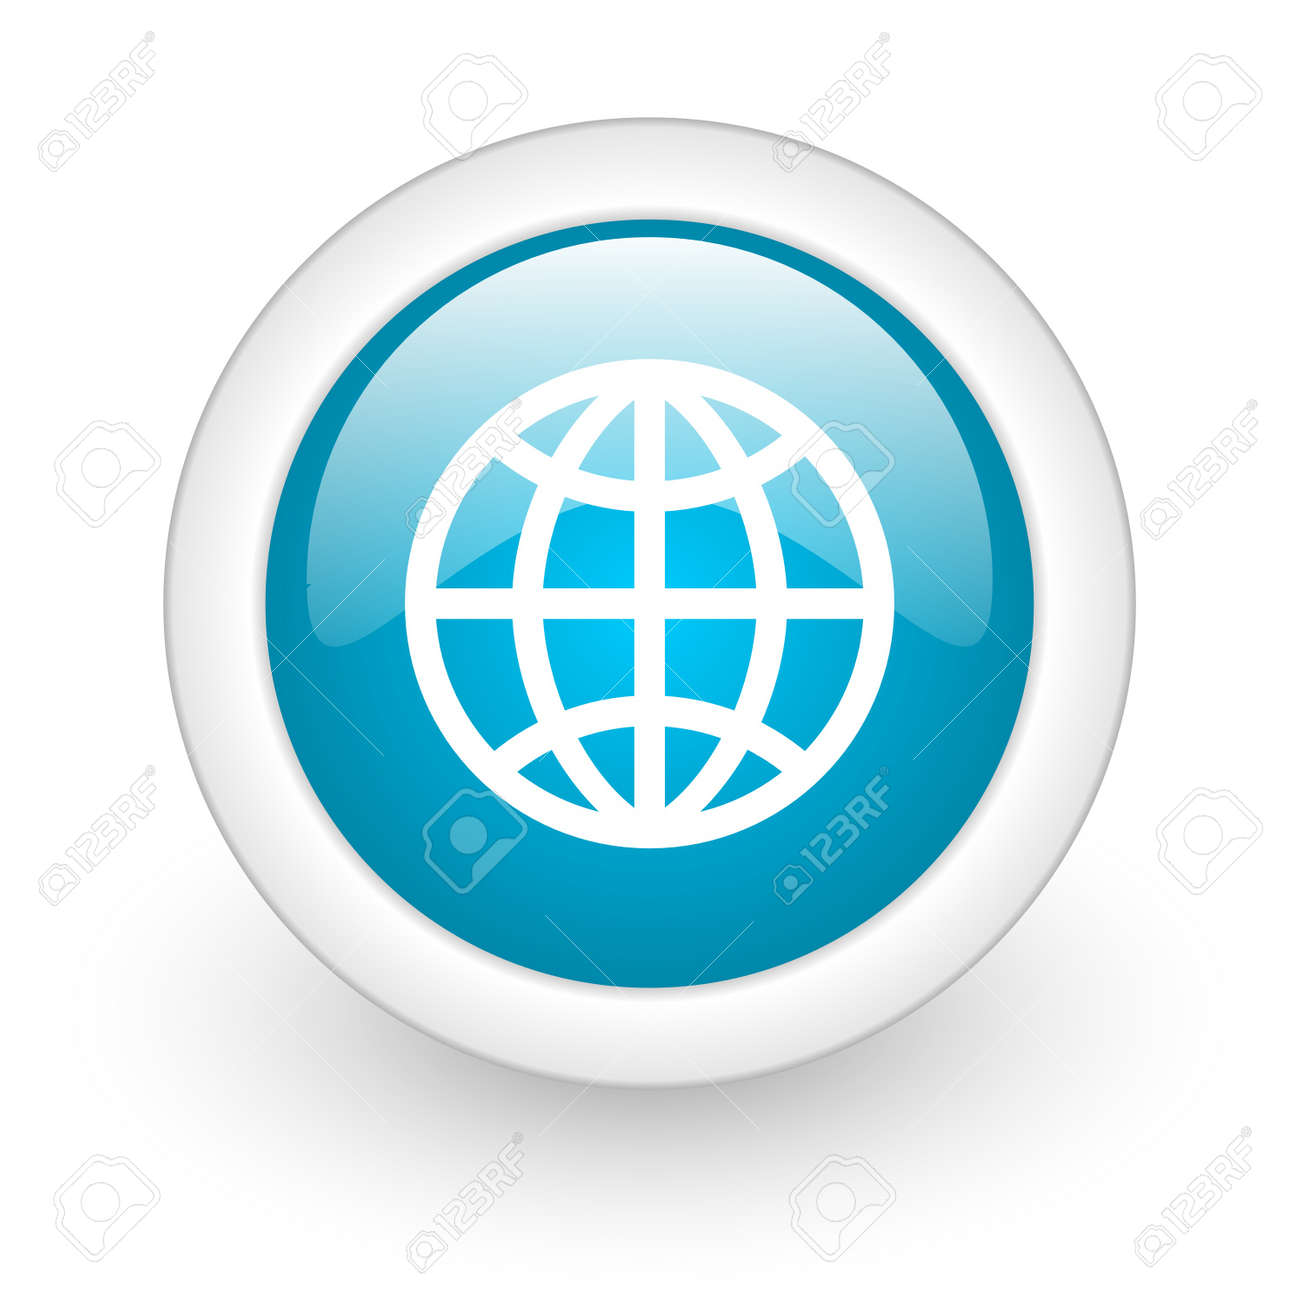 globe web button Stock Photo - 11872079